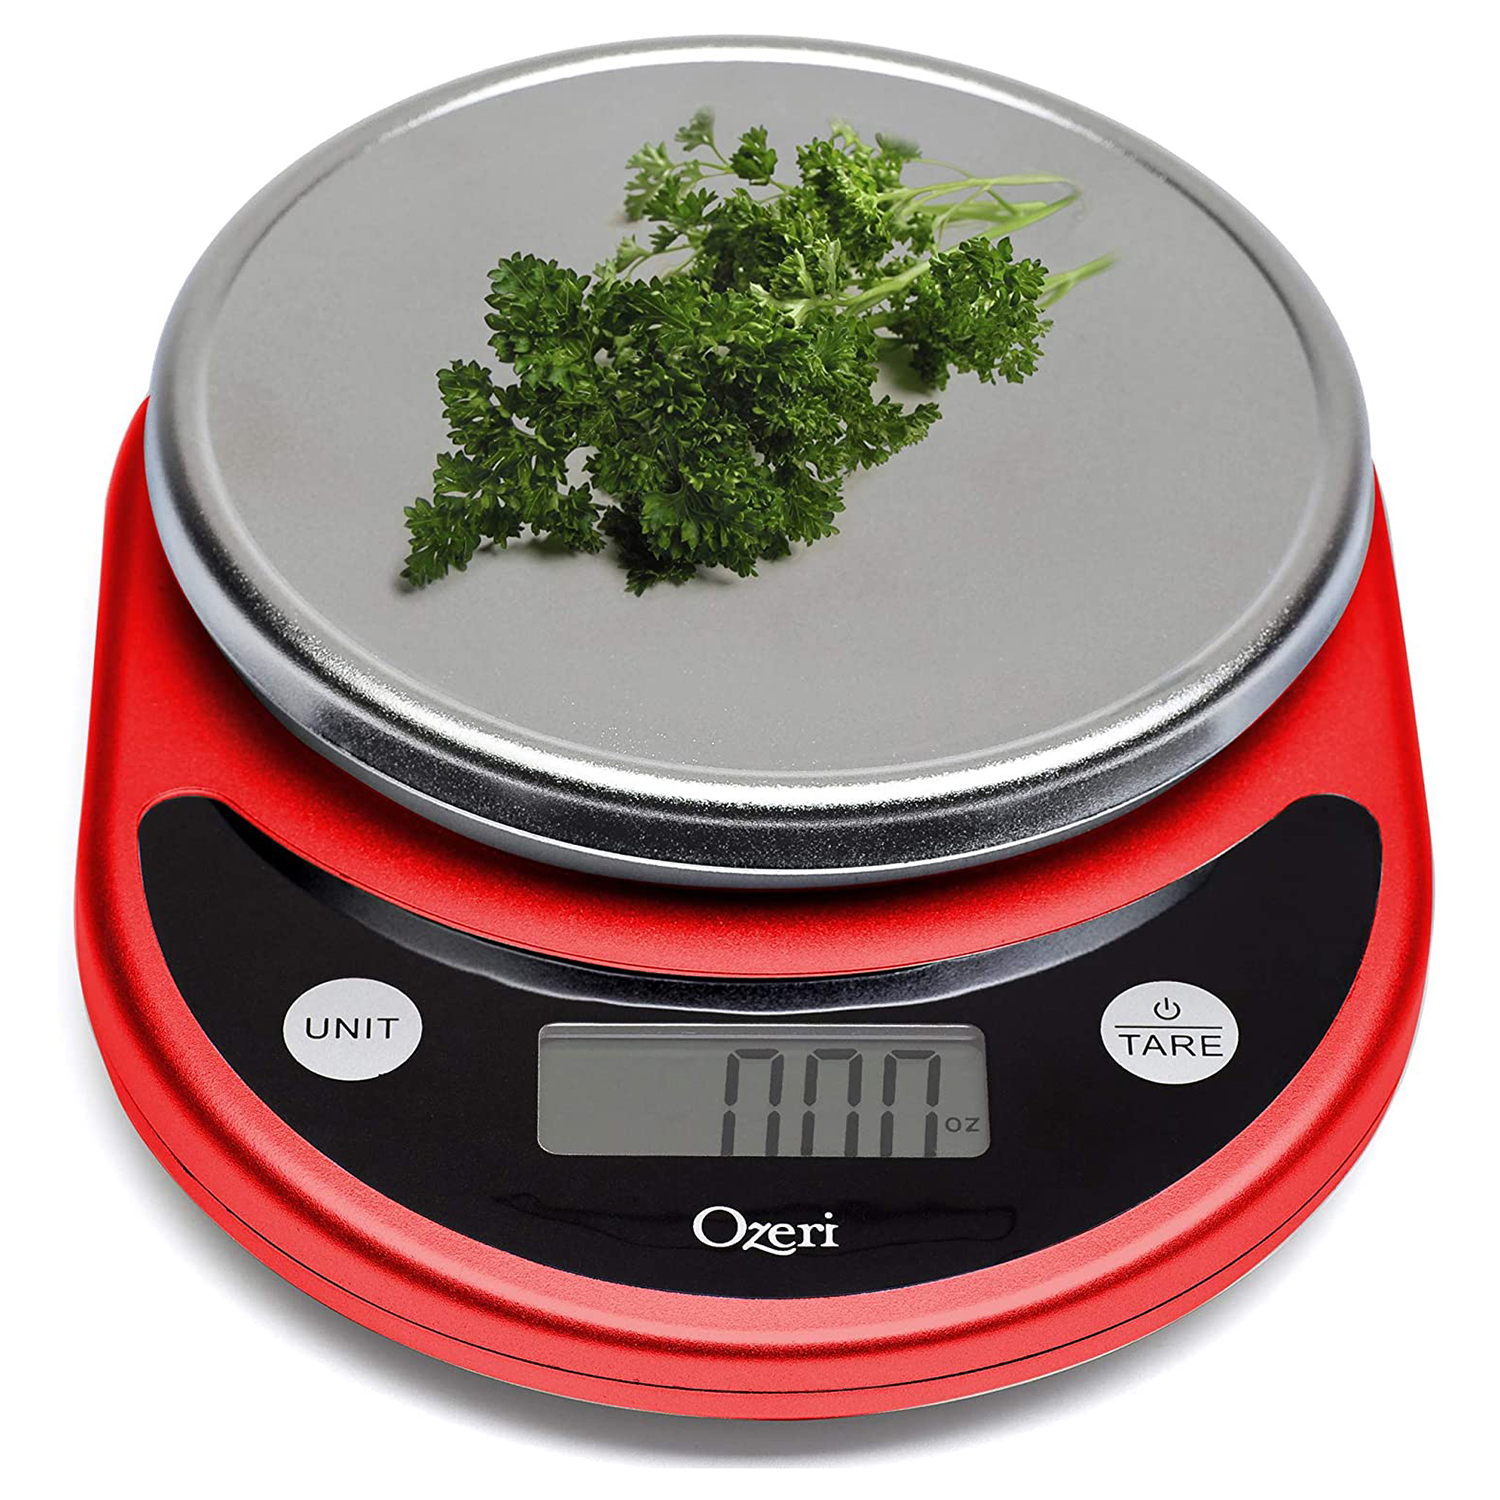 Ozeri ZK14-R Pronto Digital Multifunction Kitchen and Food Scale